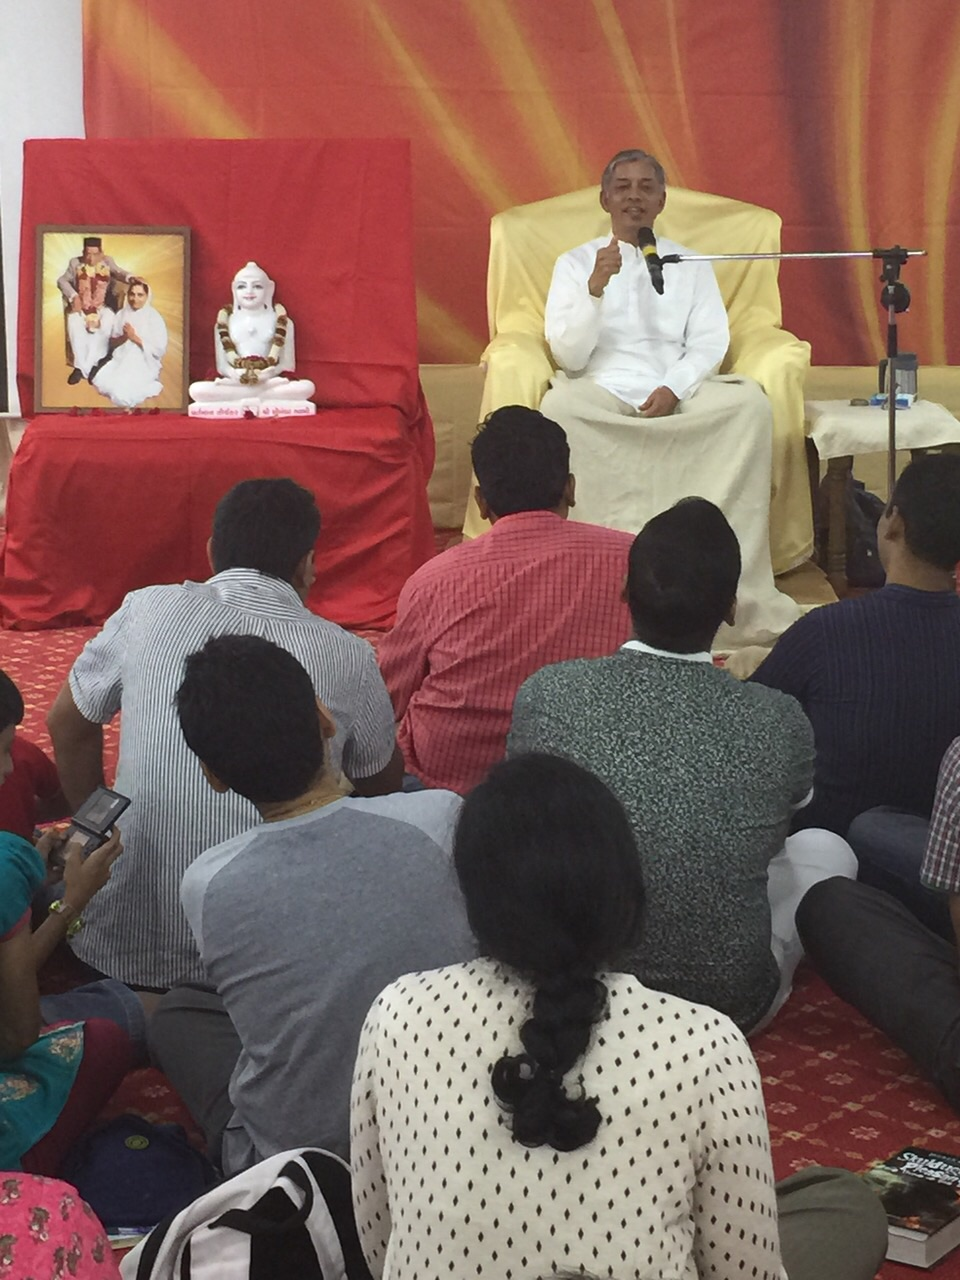 Follow -up Satsang